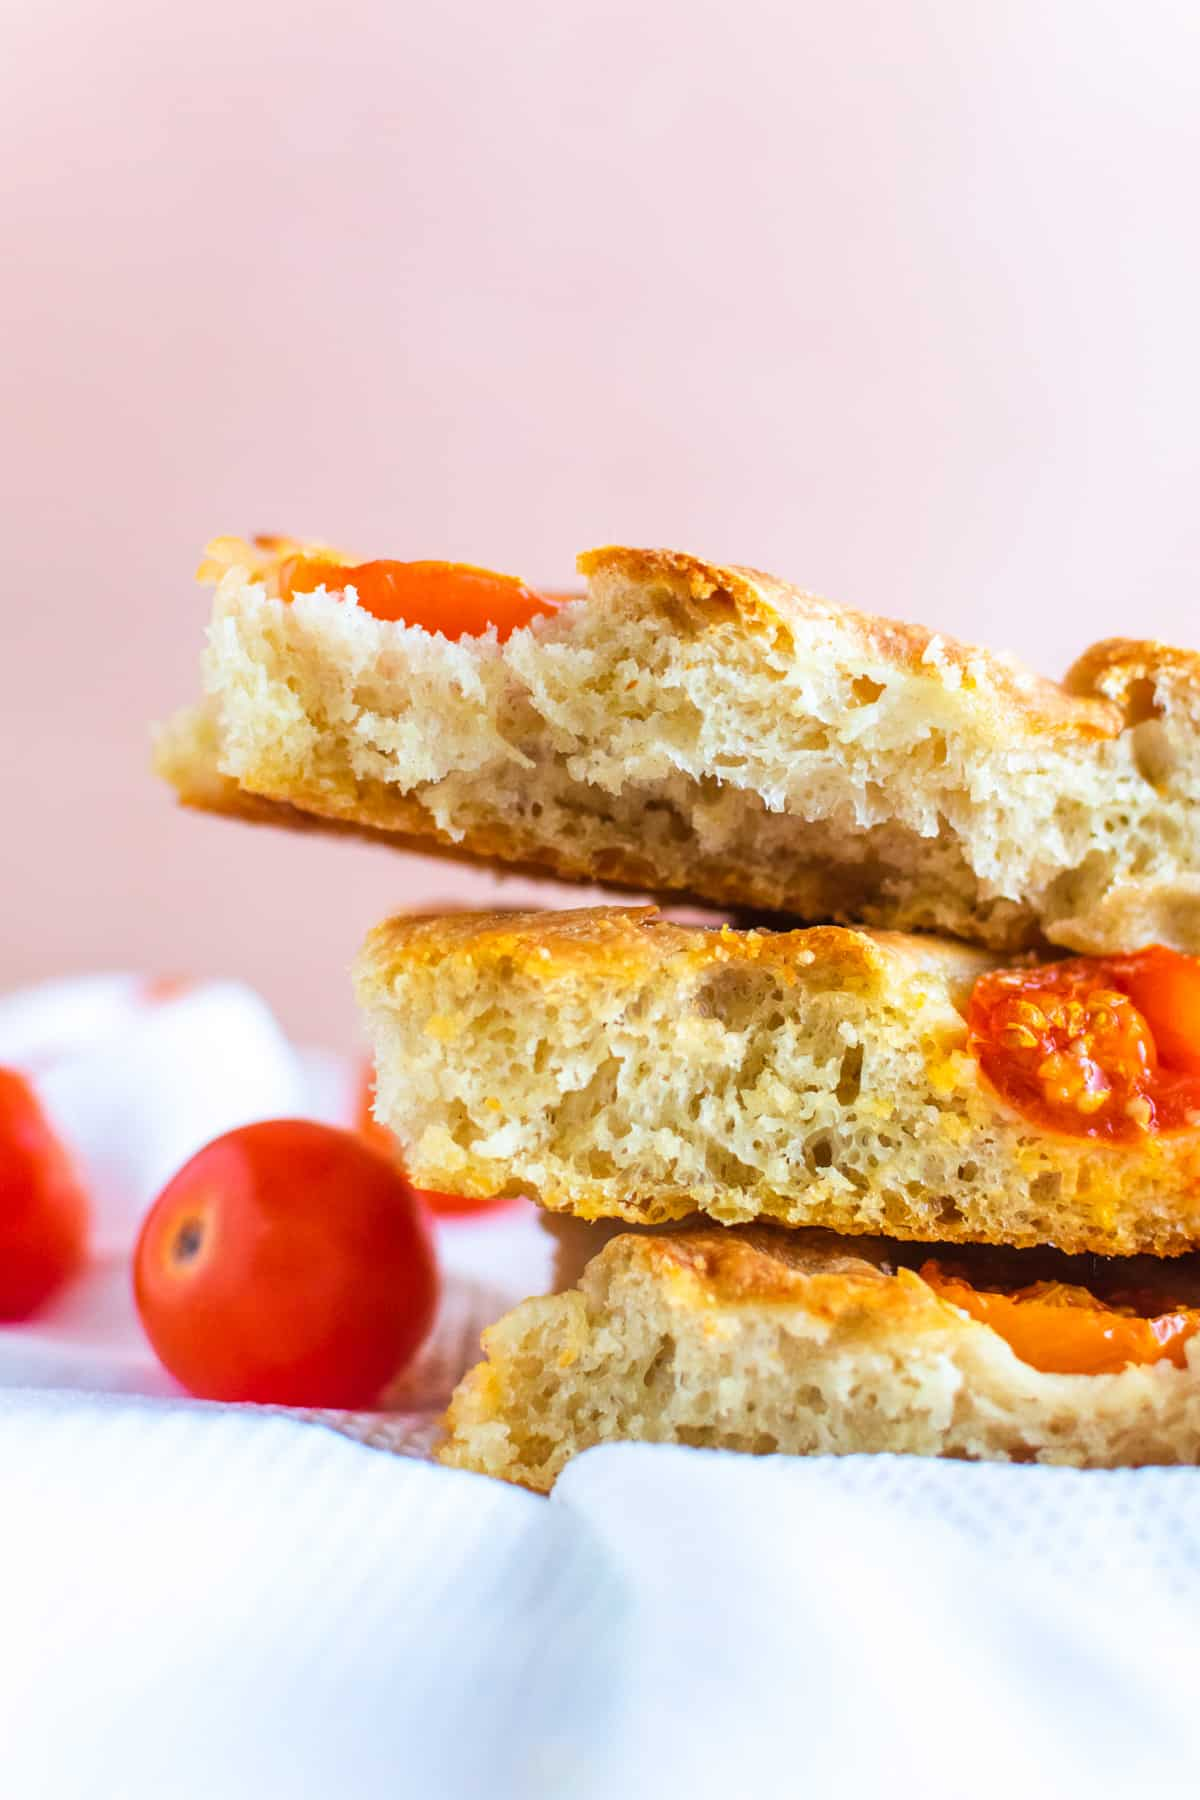 Tomato focaccia pieces inspired by salt fat acid heat stacked on top of each other.